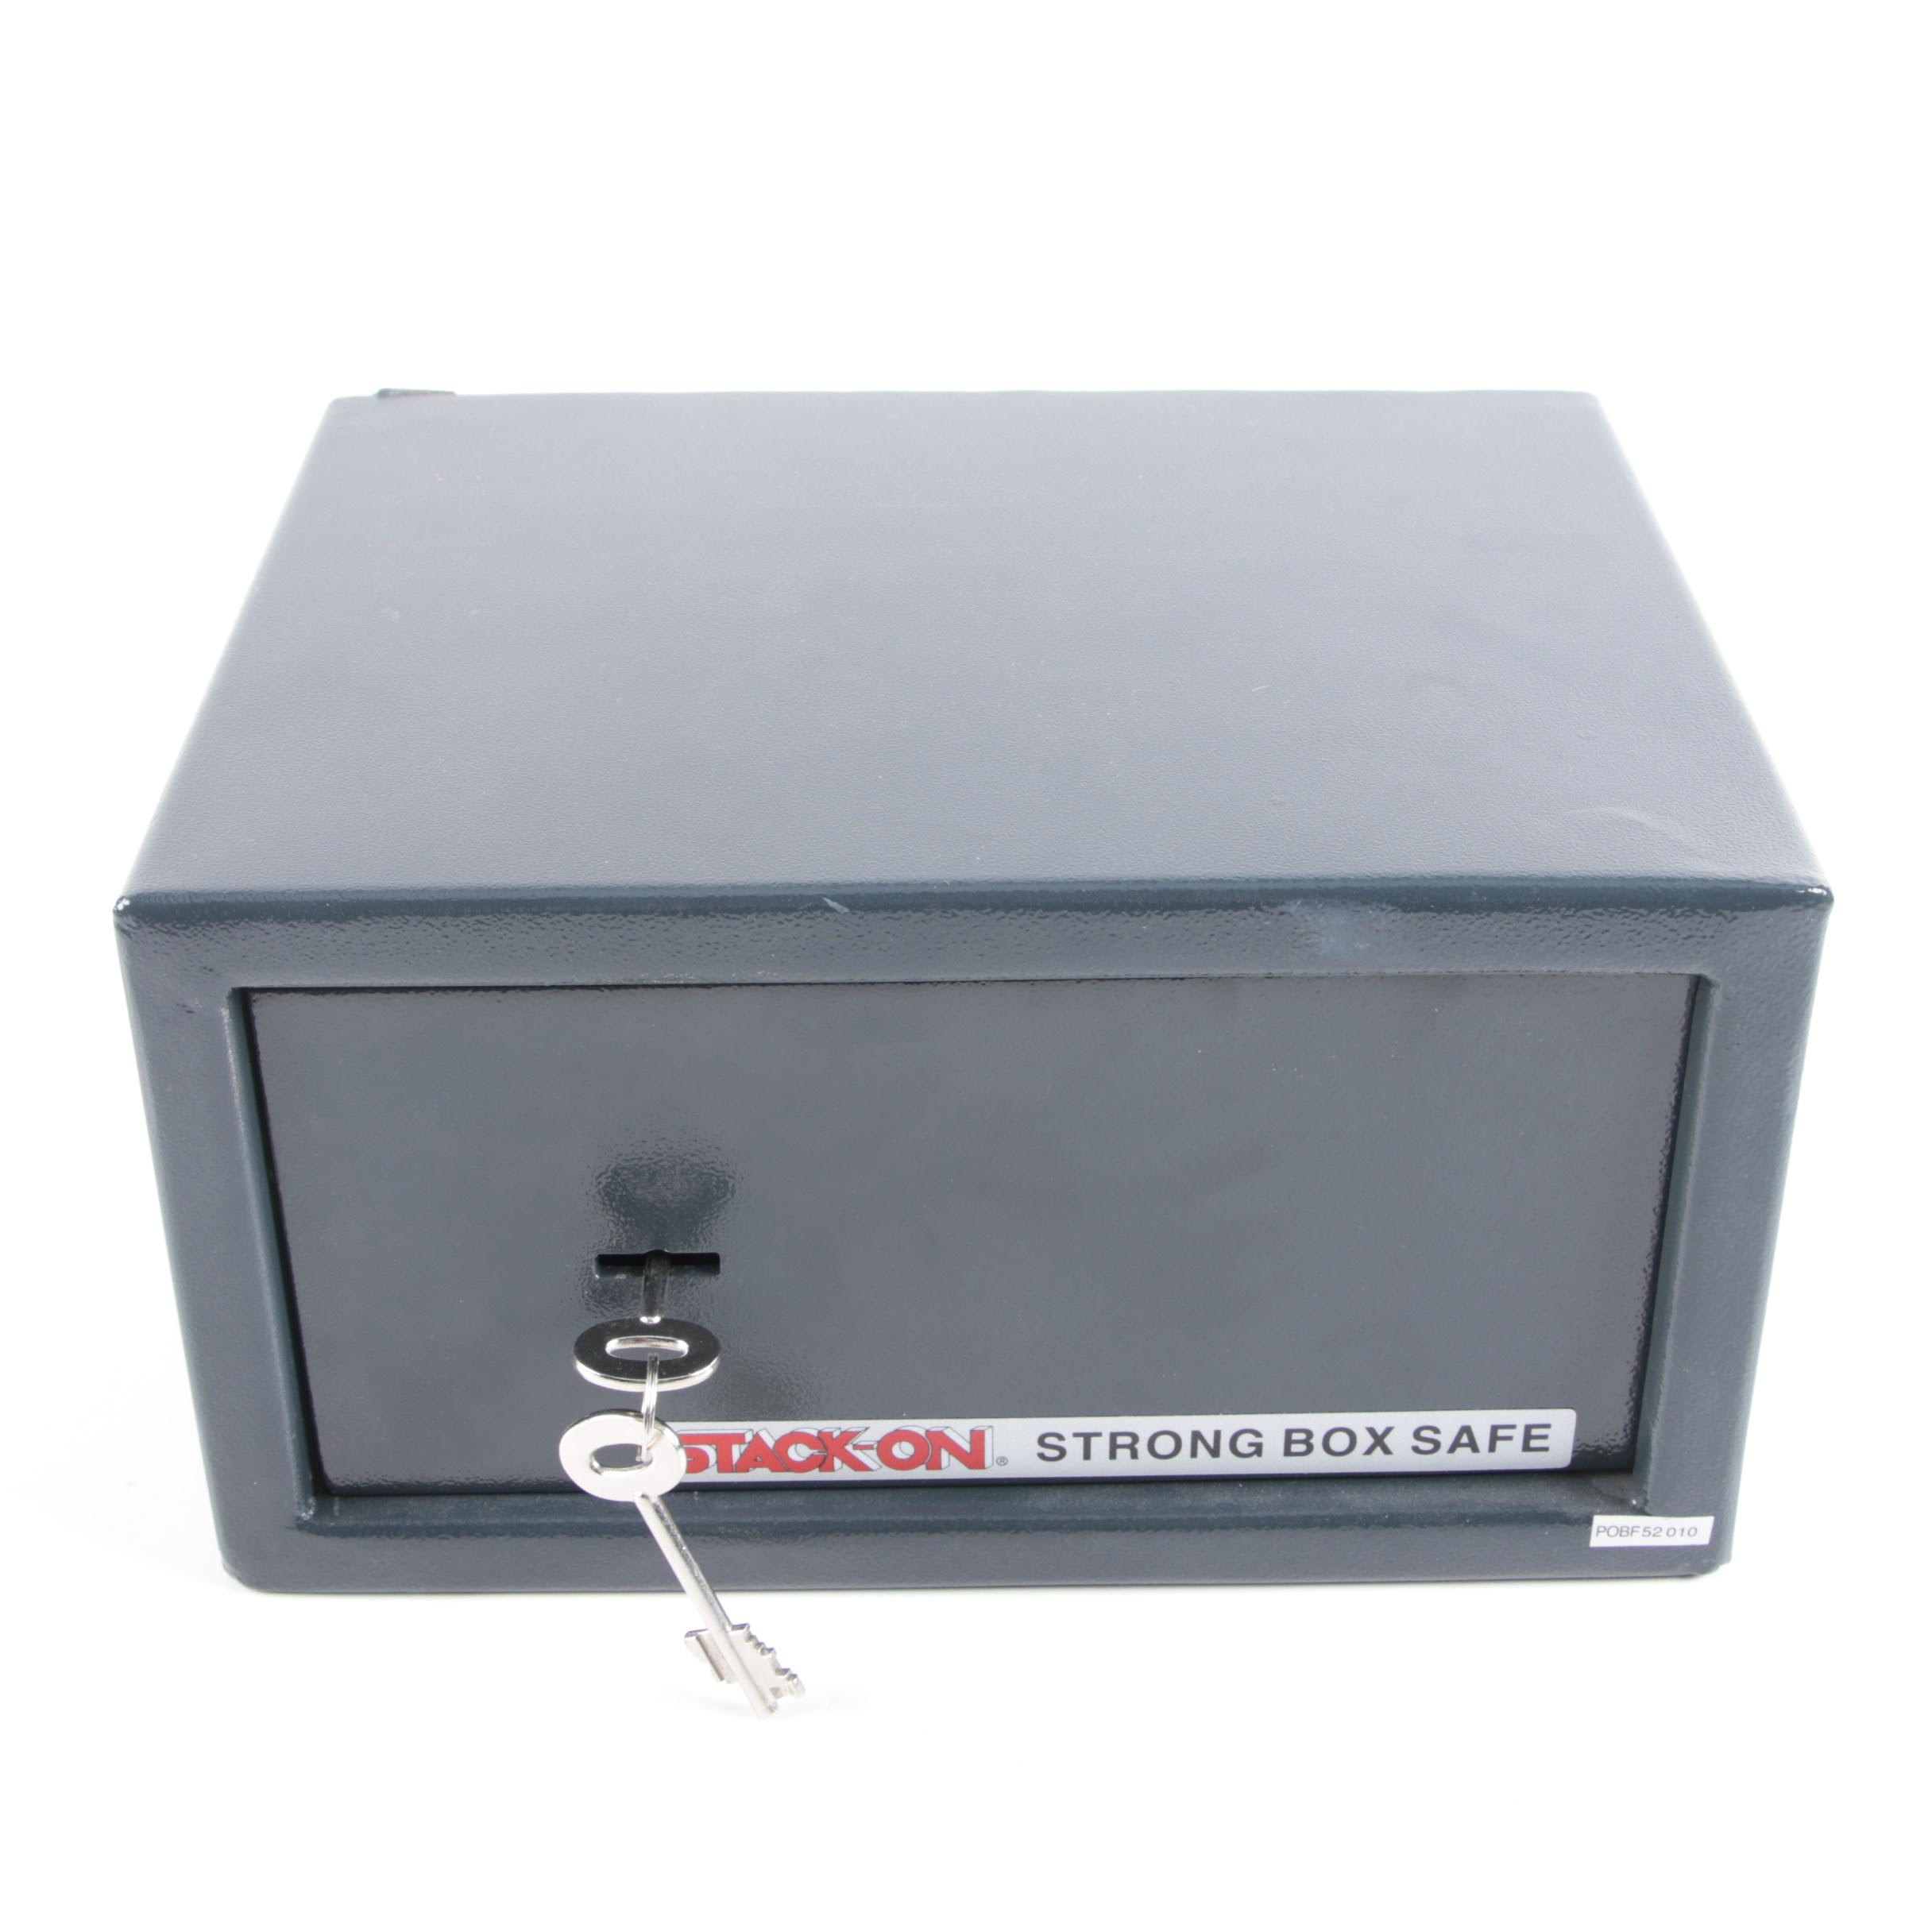 Stack-On Strong Box Safe